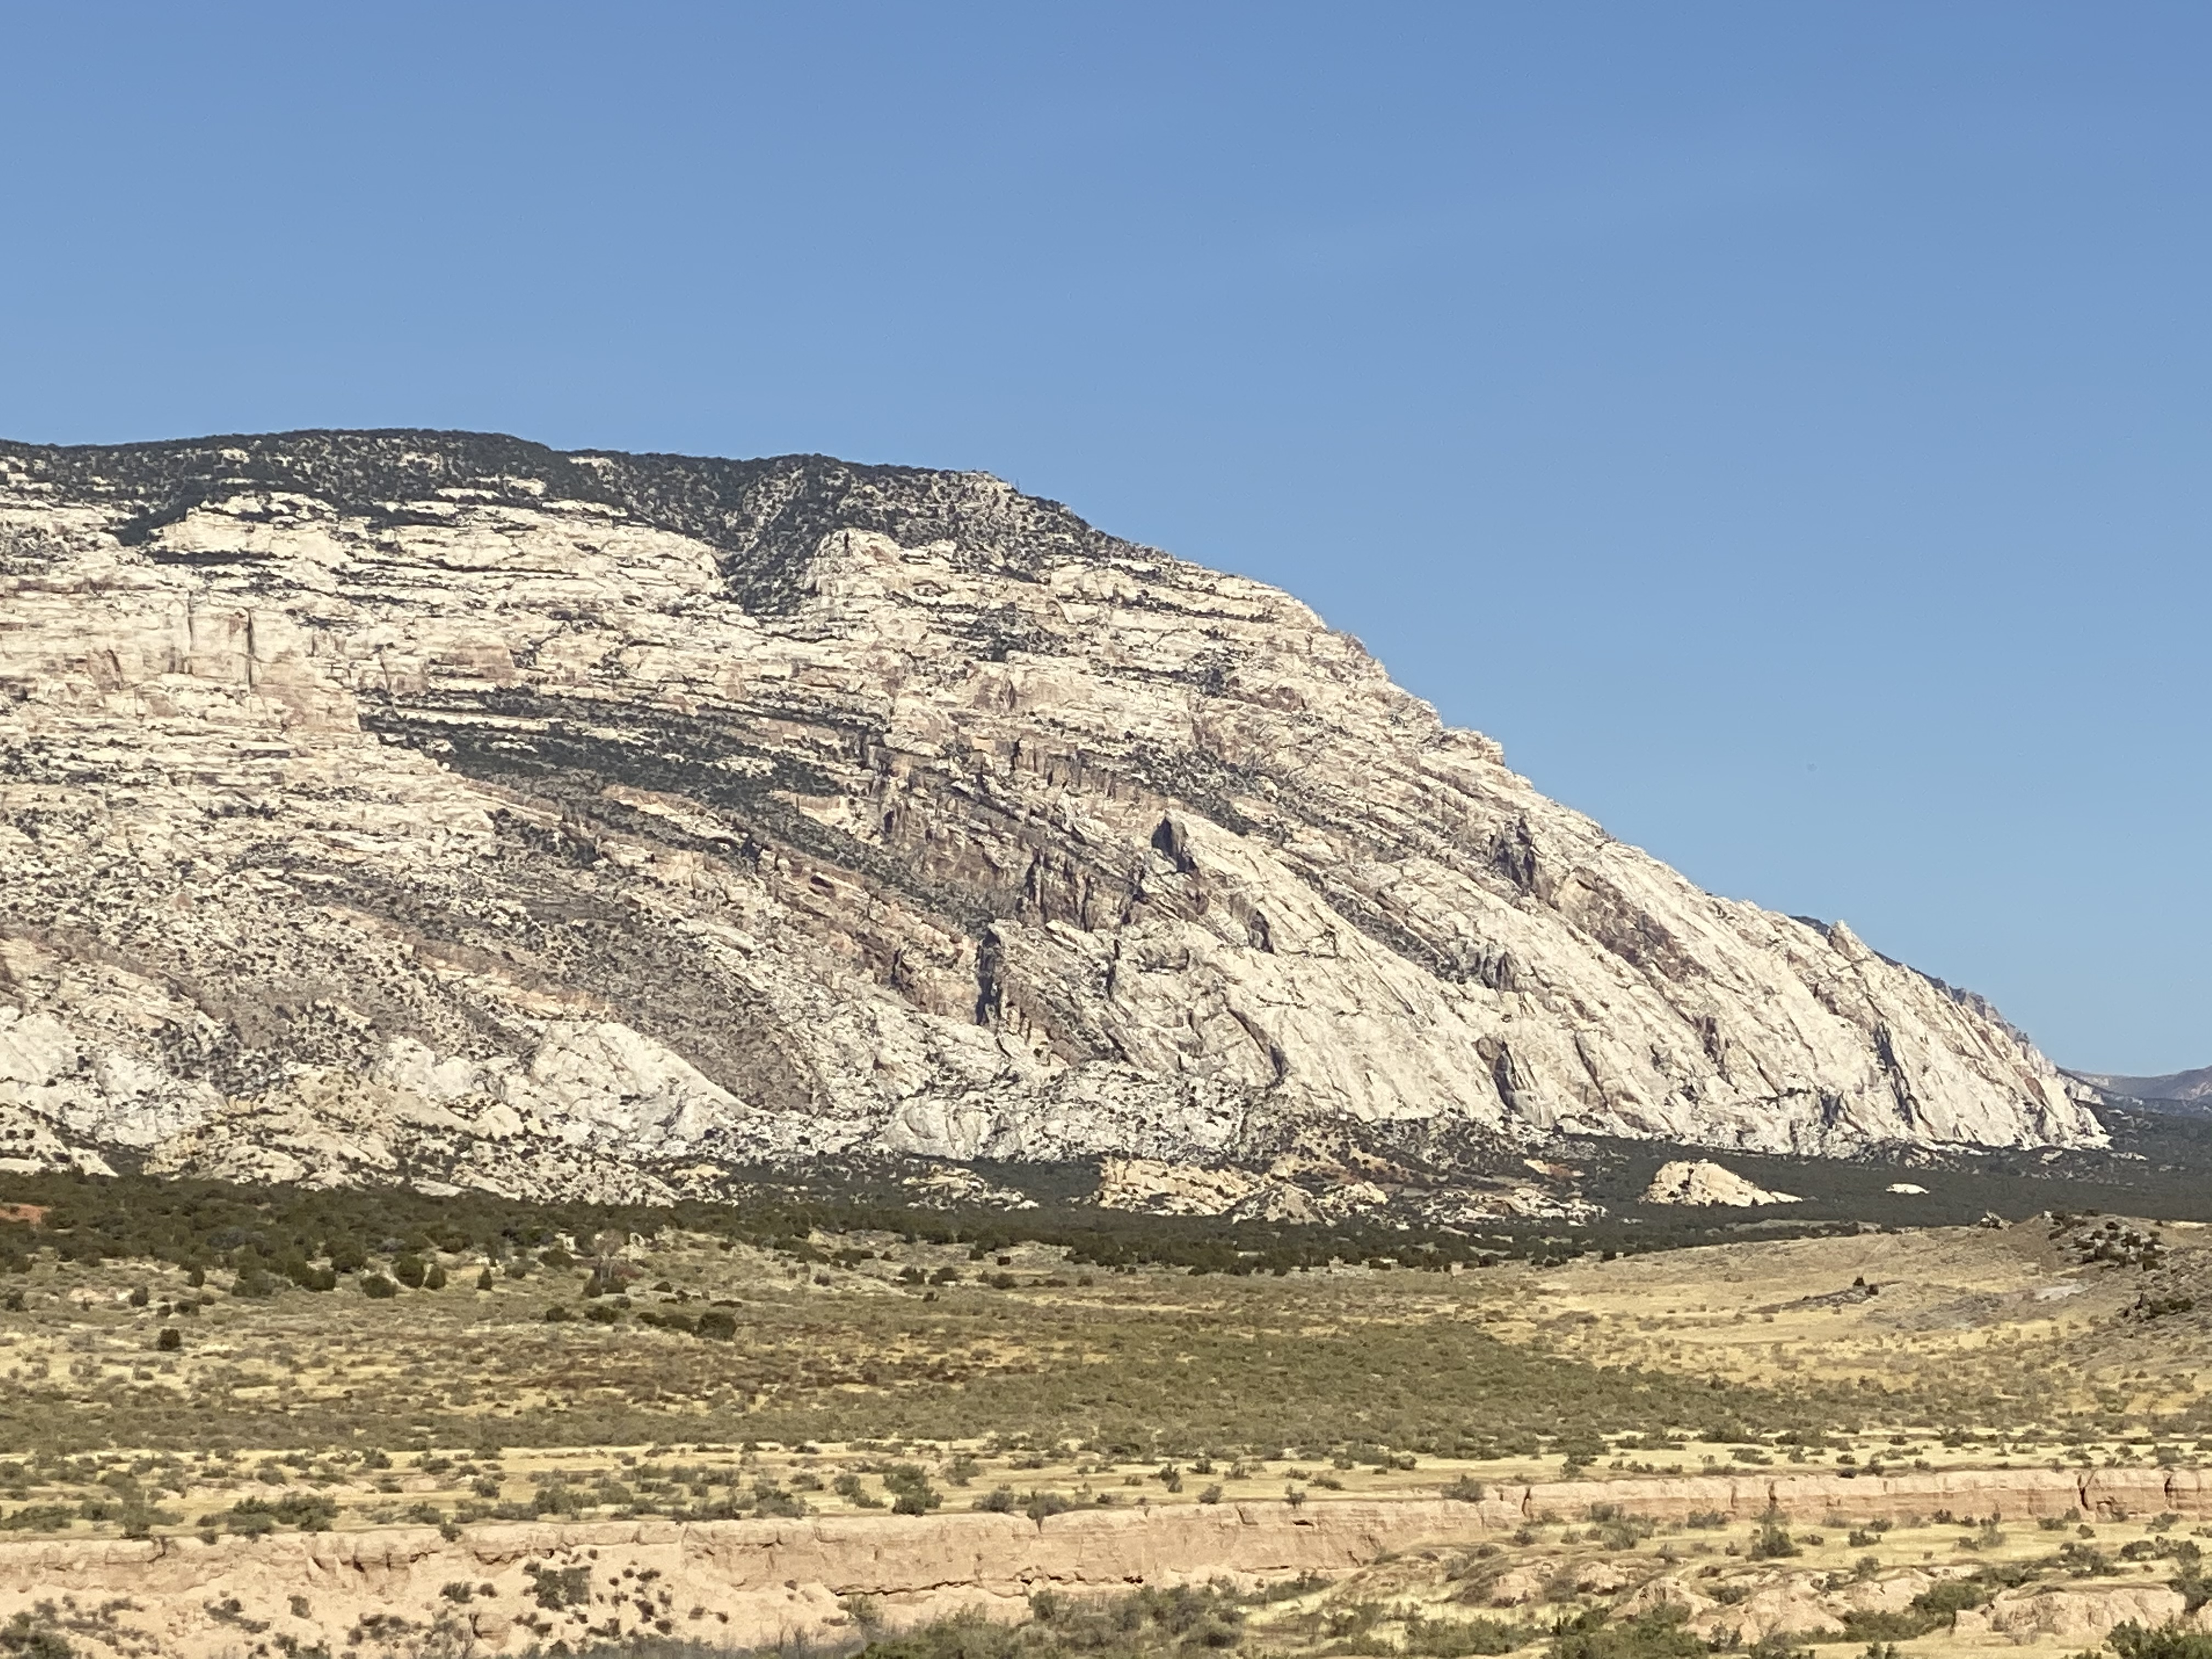 A closeup of a rock formation north of US40 east of Dinosaur, CO.